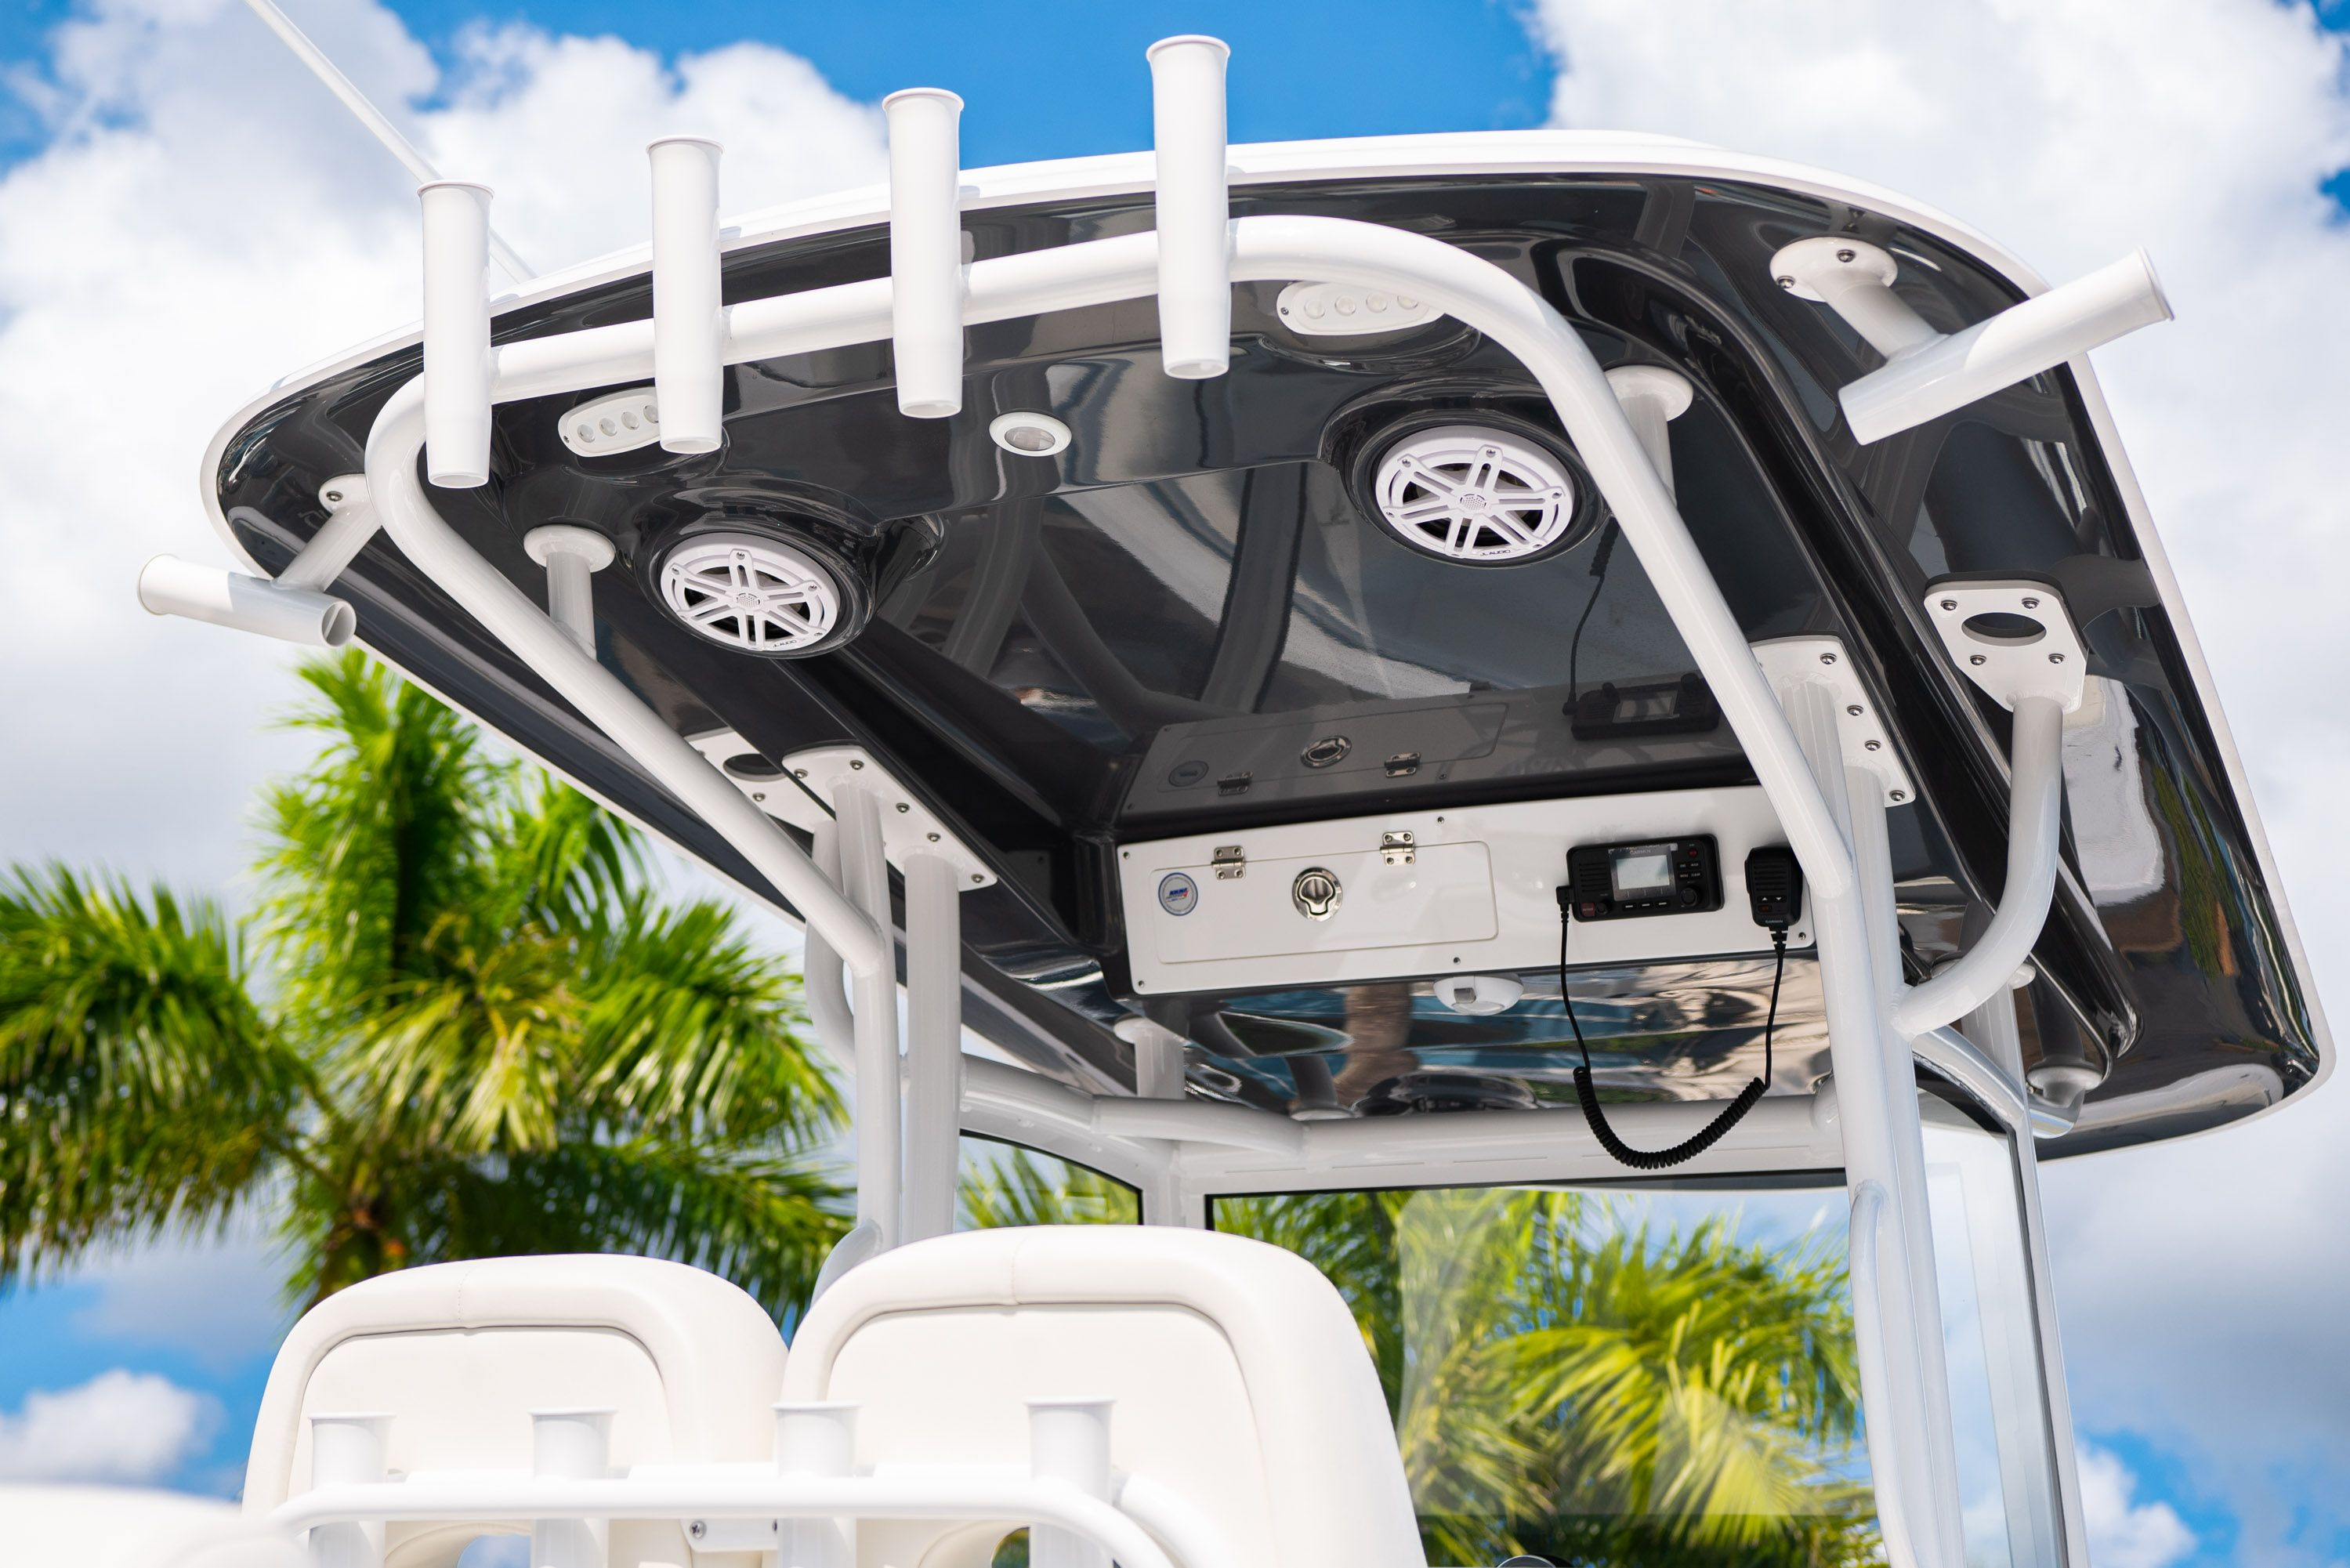 Thumbnail 8 for New 2020 Sportsman Heritage 251 Center Console boat for sale in West Palm Beach, FL